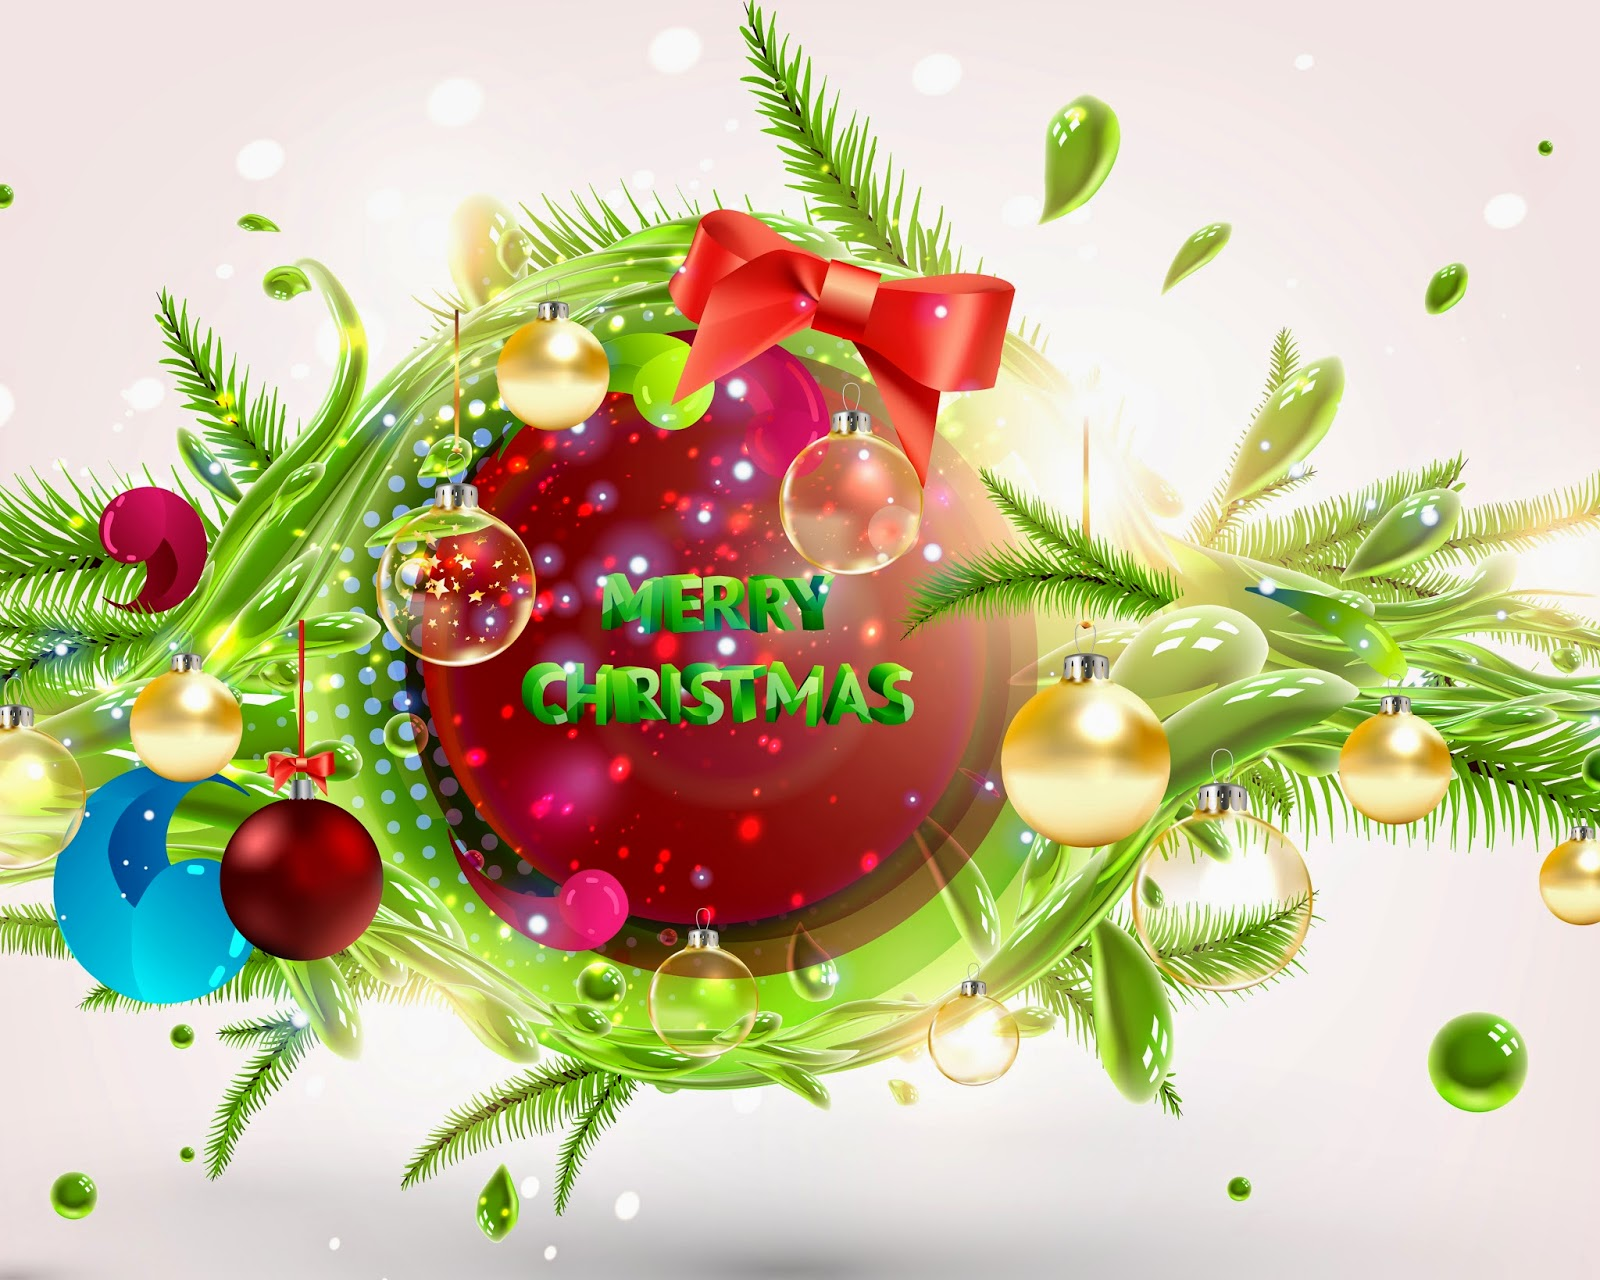 Merry Christmas greeting card HD images free download | PIXHOME